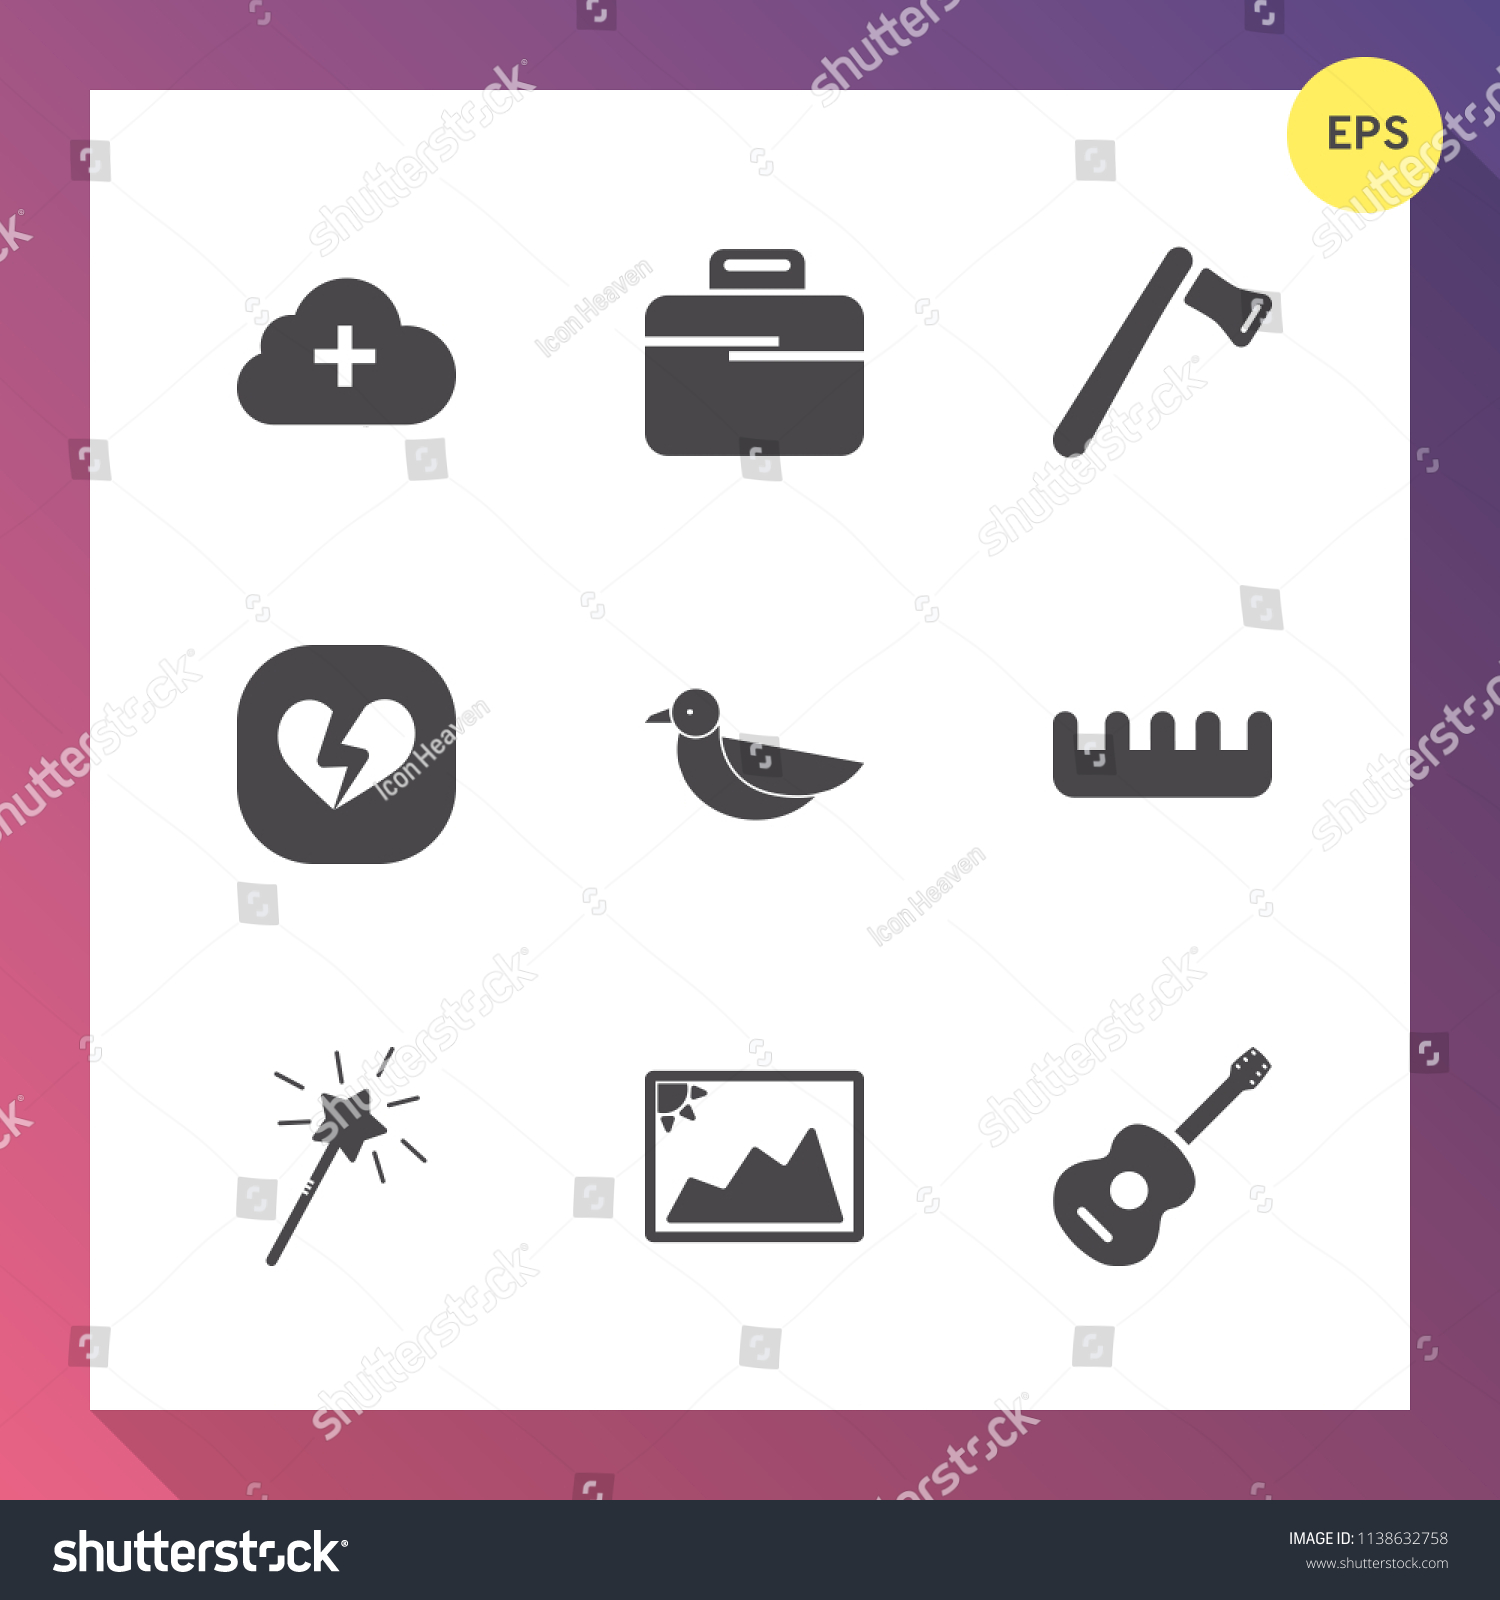 Modern Simple Vector Icon Set On Stock Royalty Free Article Panpot Guitar Rewiring Gradient Background With Comb Business Upload